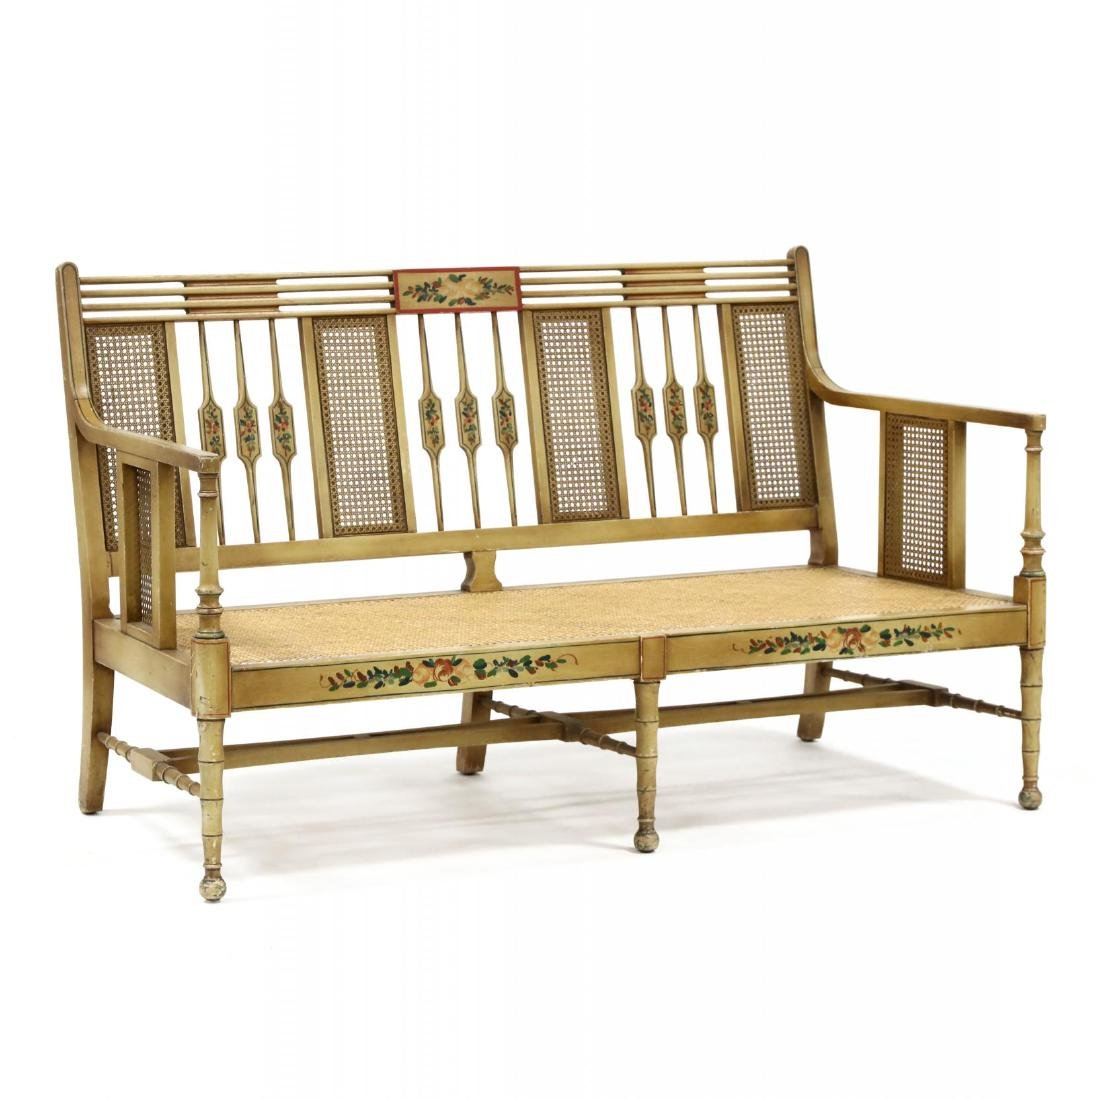 Elgin A. Simonds Furniture Co., Vintage Painted Caned